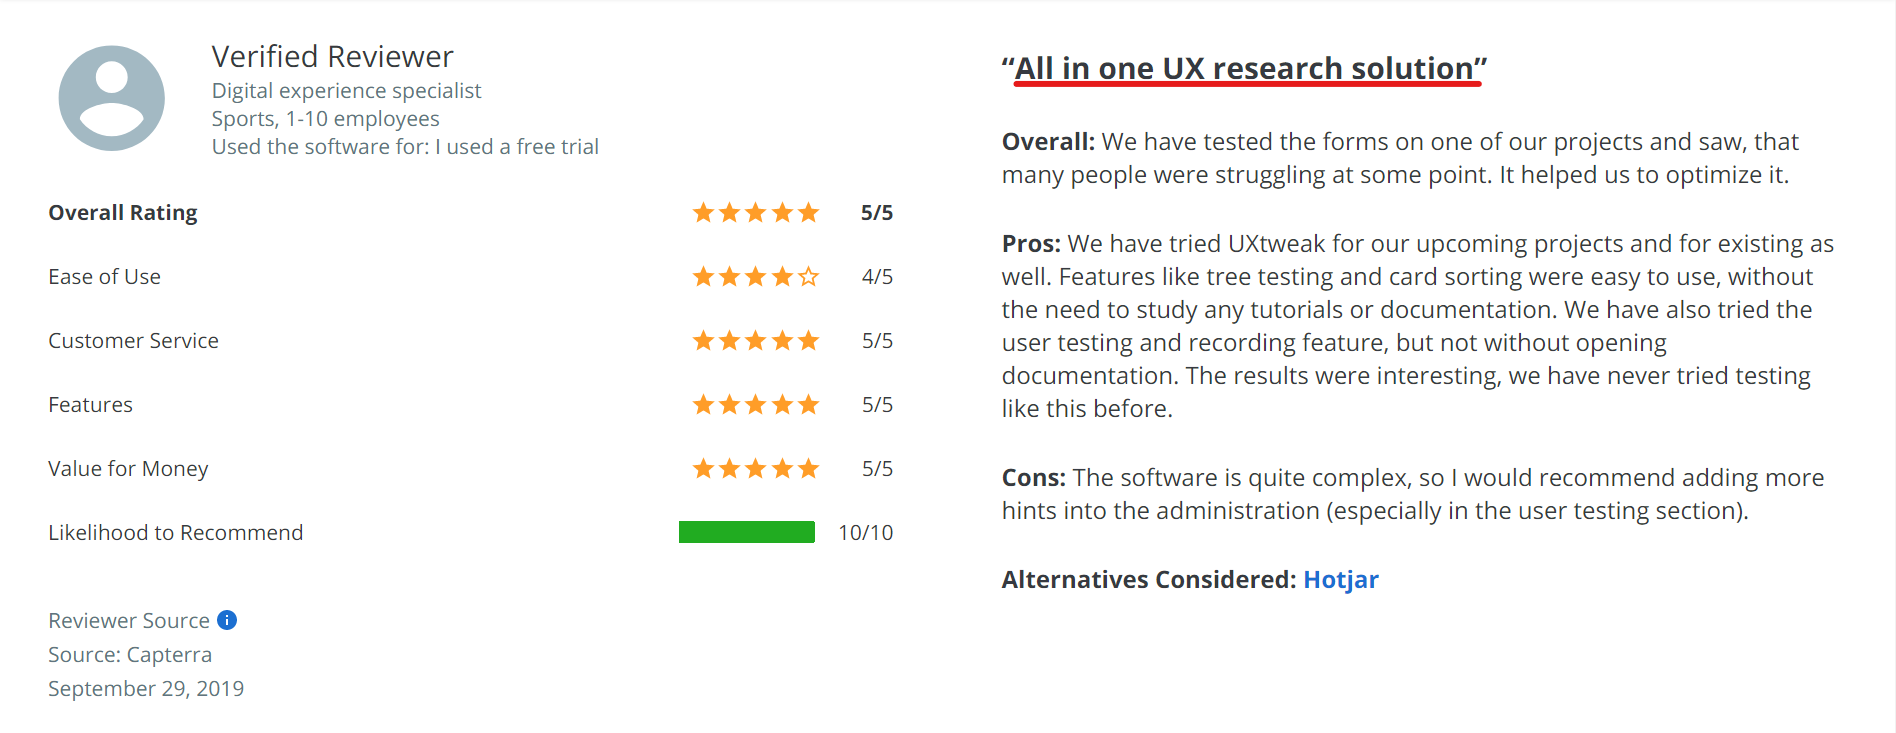 All-in-one UX research solution review of UXtweak